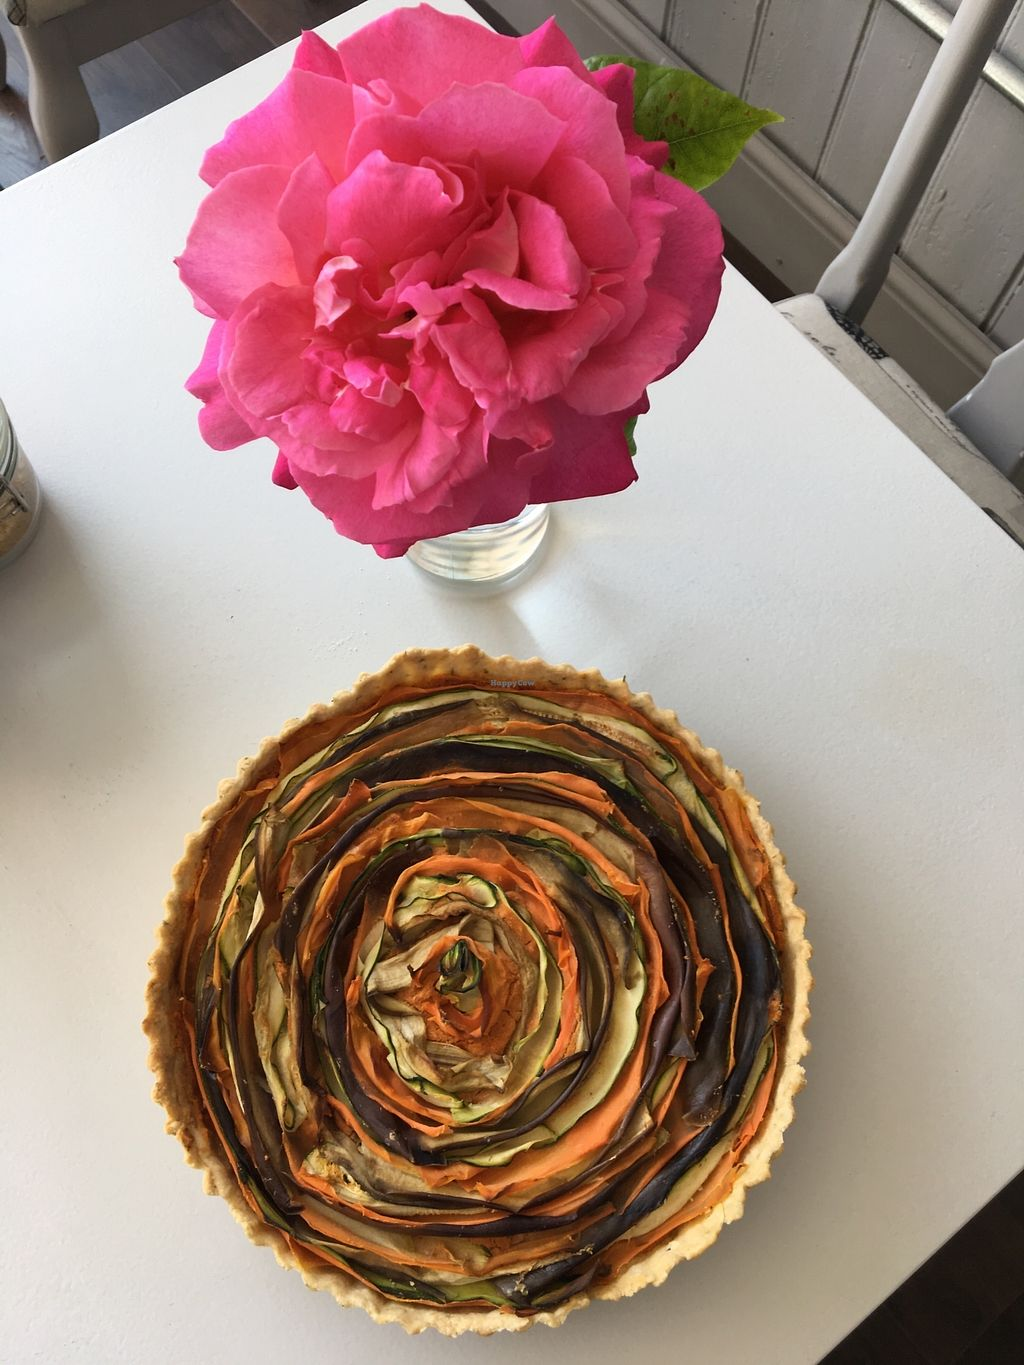 "Photo of 2 Girls' Cafe  by <a href=""/members/profile/2GirlsCafe"">2GirlsCafe</a> <br/>Vegan spiral tart is just an example what we offer in our lovely cafe <br/> June 26, 2017  - <a href='/contact/abuse/image/93159/273655'>Report</a>"